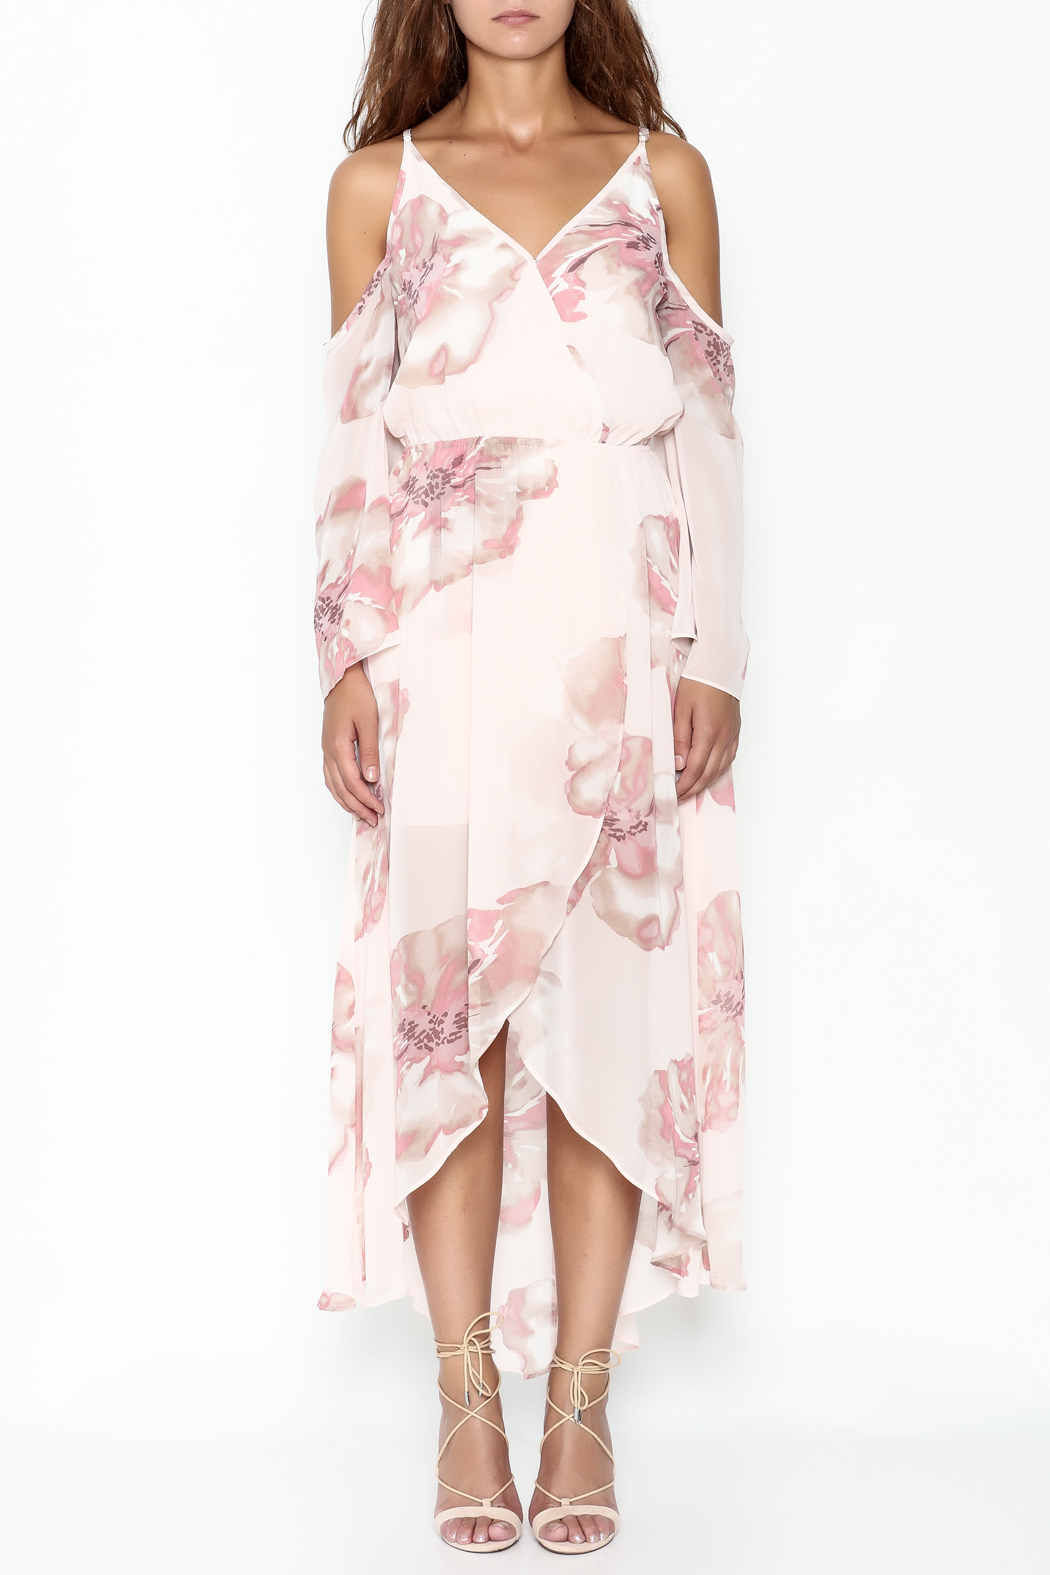 Ark & Co. Floral Maxi Dress - Front Full Image